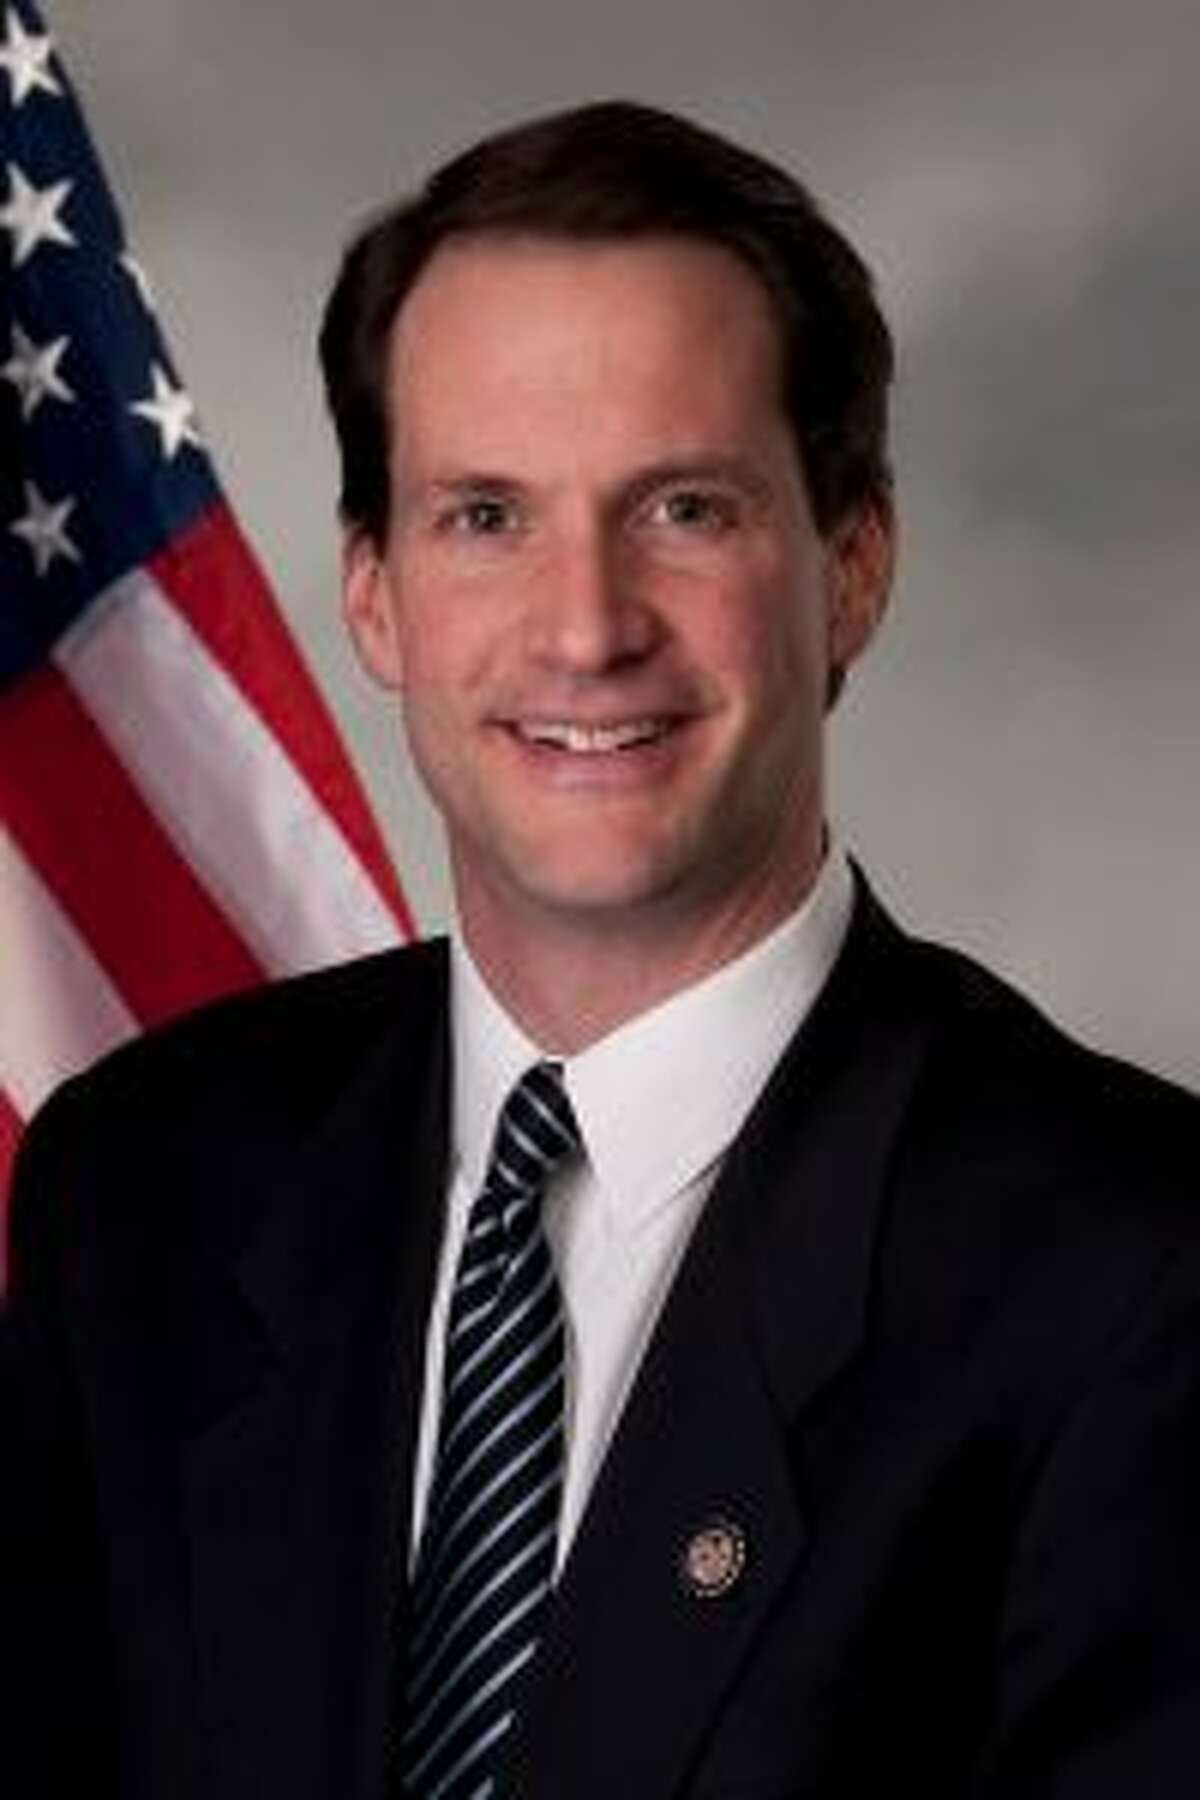 U.S. Congressman Jim Himes (D-CT 4th) will speak at Staying Put in New Canaan's 10th anniversary event on May 20th at St. Mark's Church.